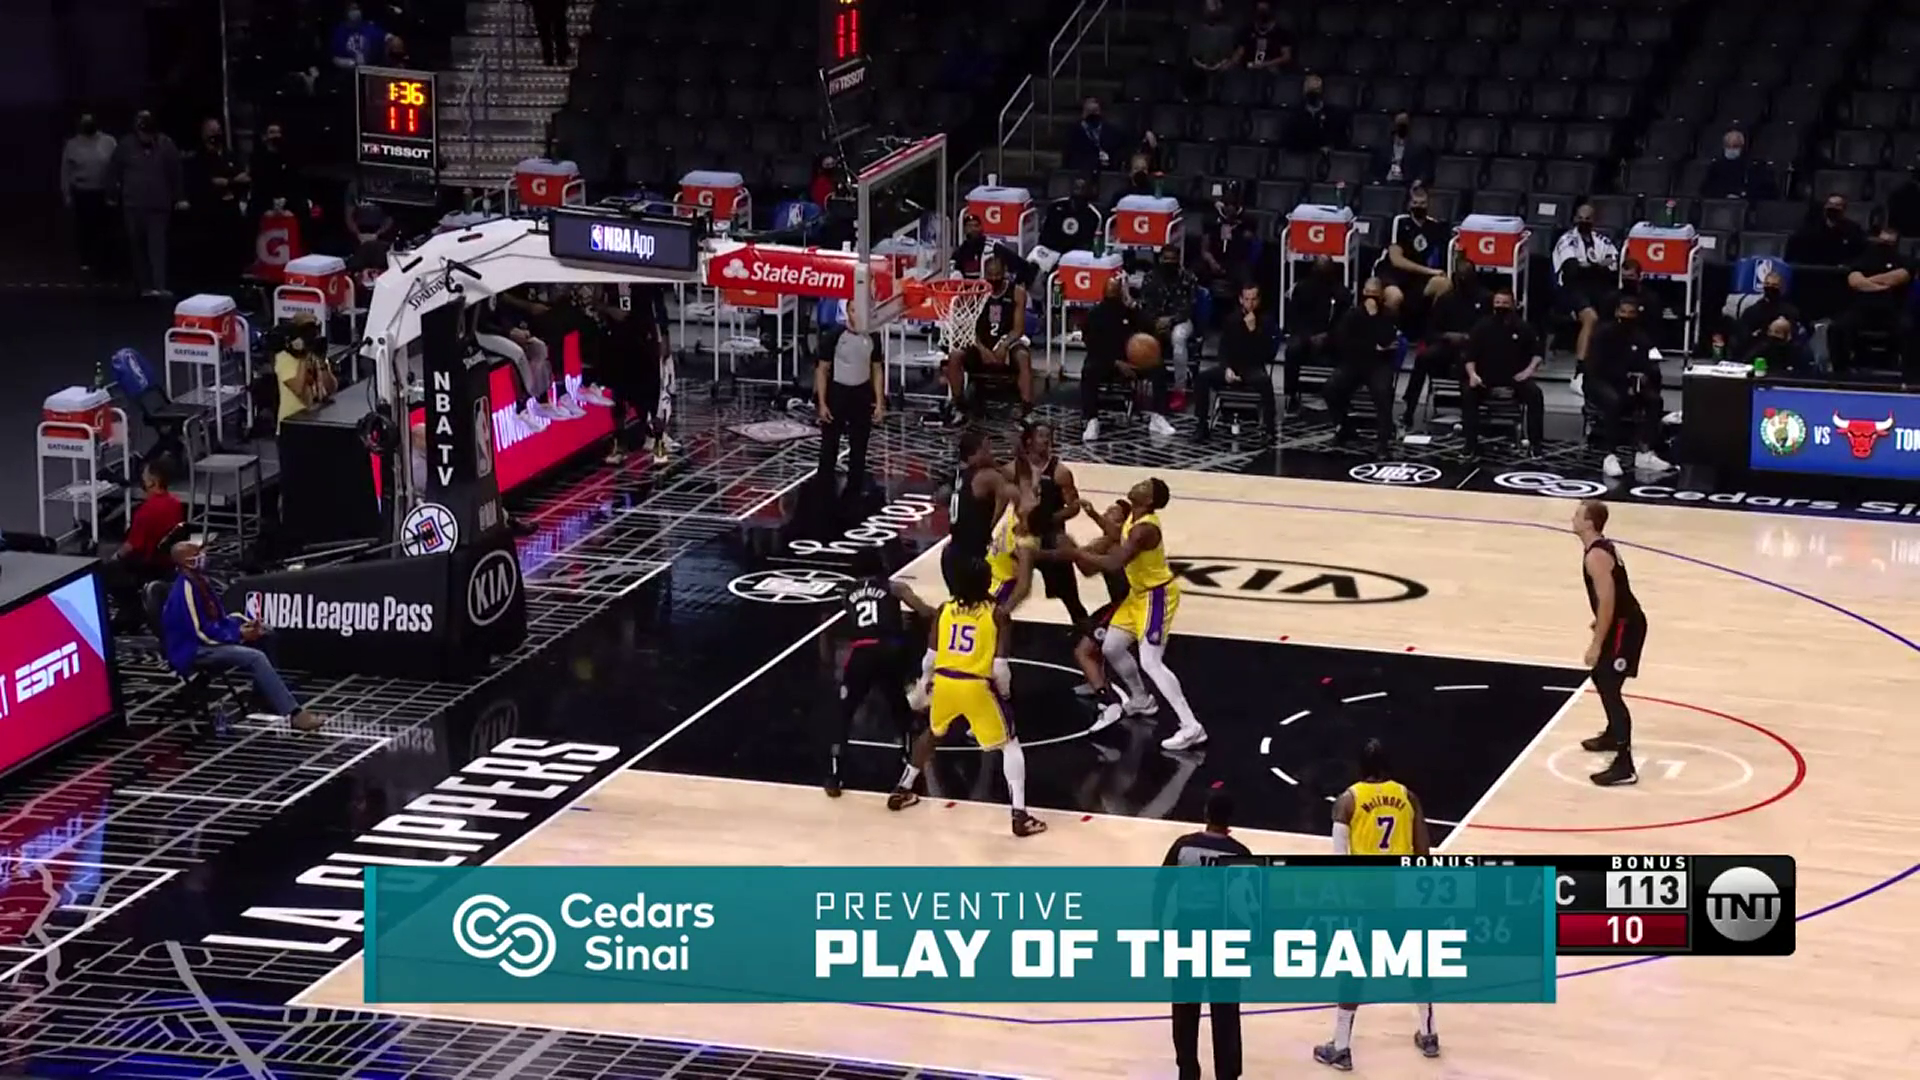 Cedars-Sinai Preventive Play of the Game | Clippers vs Lakers (5.6.21)